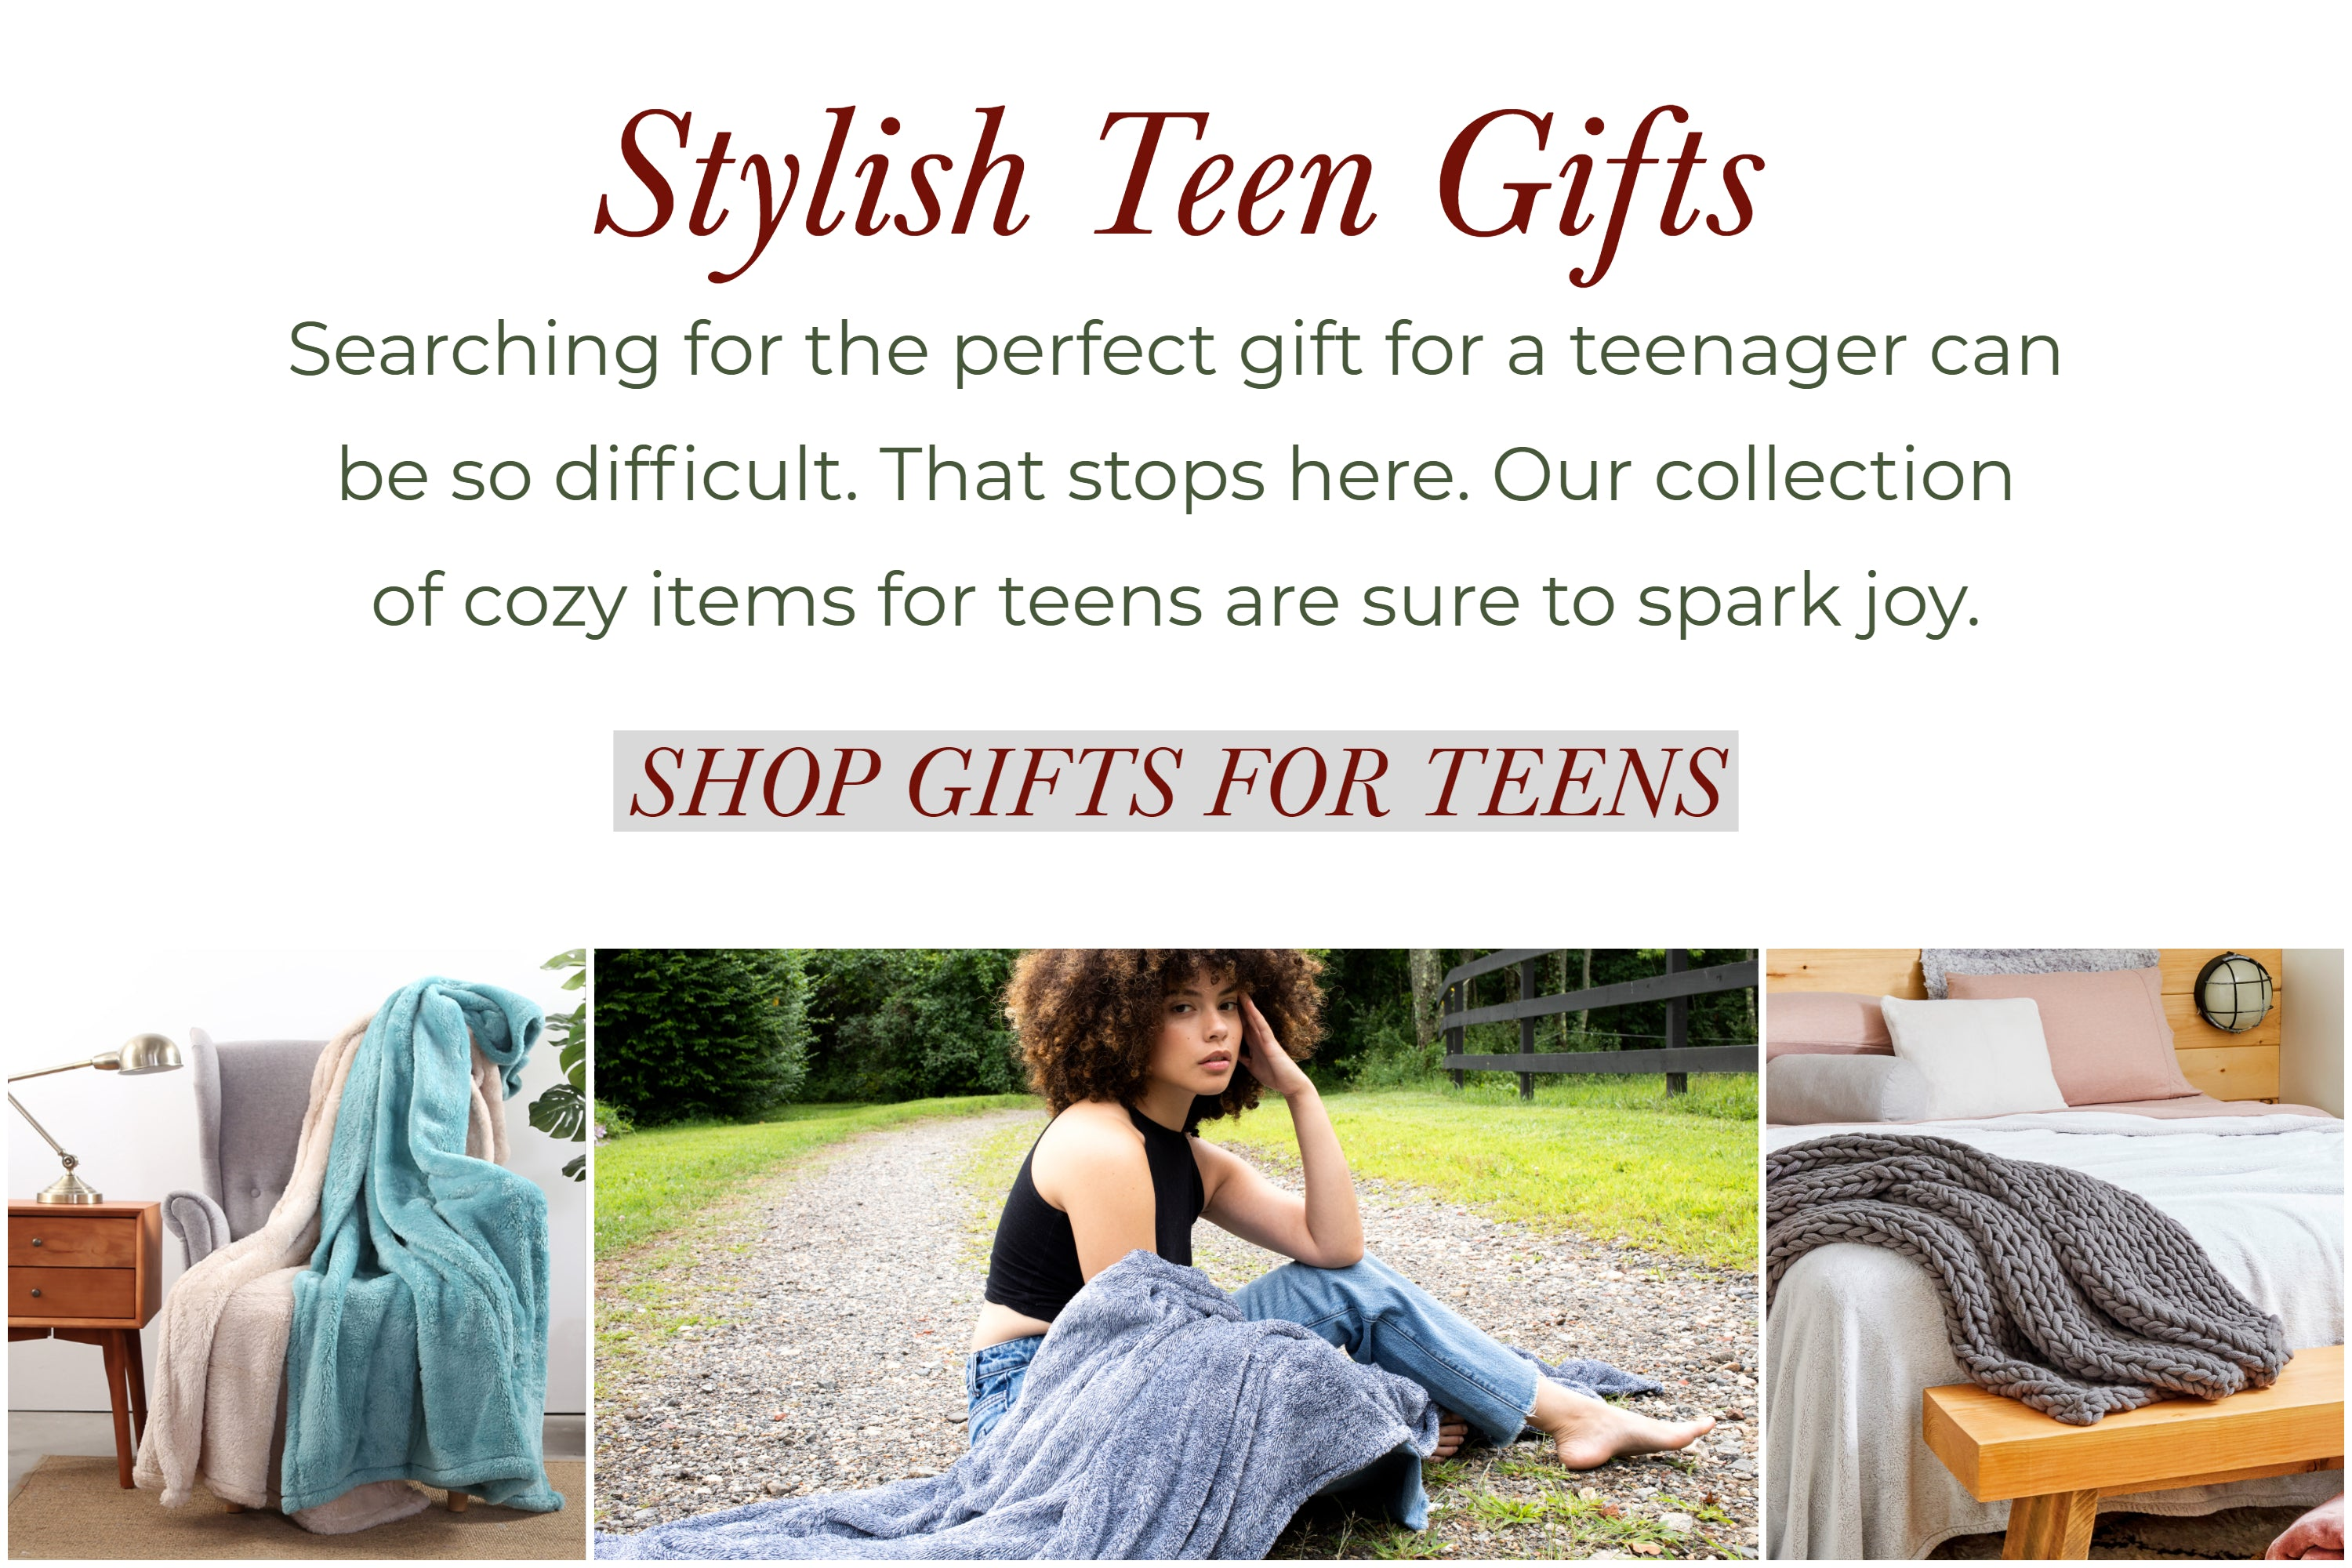 Stylish teen gifts. searching for the perfect gift for a teenage can be so difficult. that stops here. our collection of cozy items for teens are sure to spark joy.